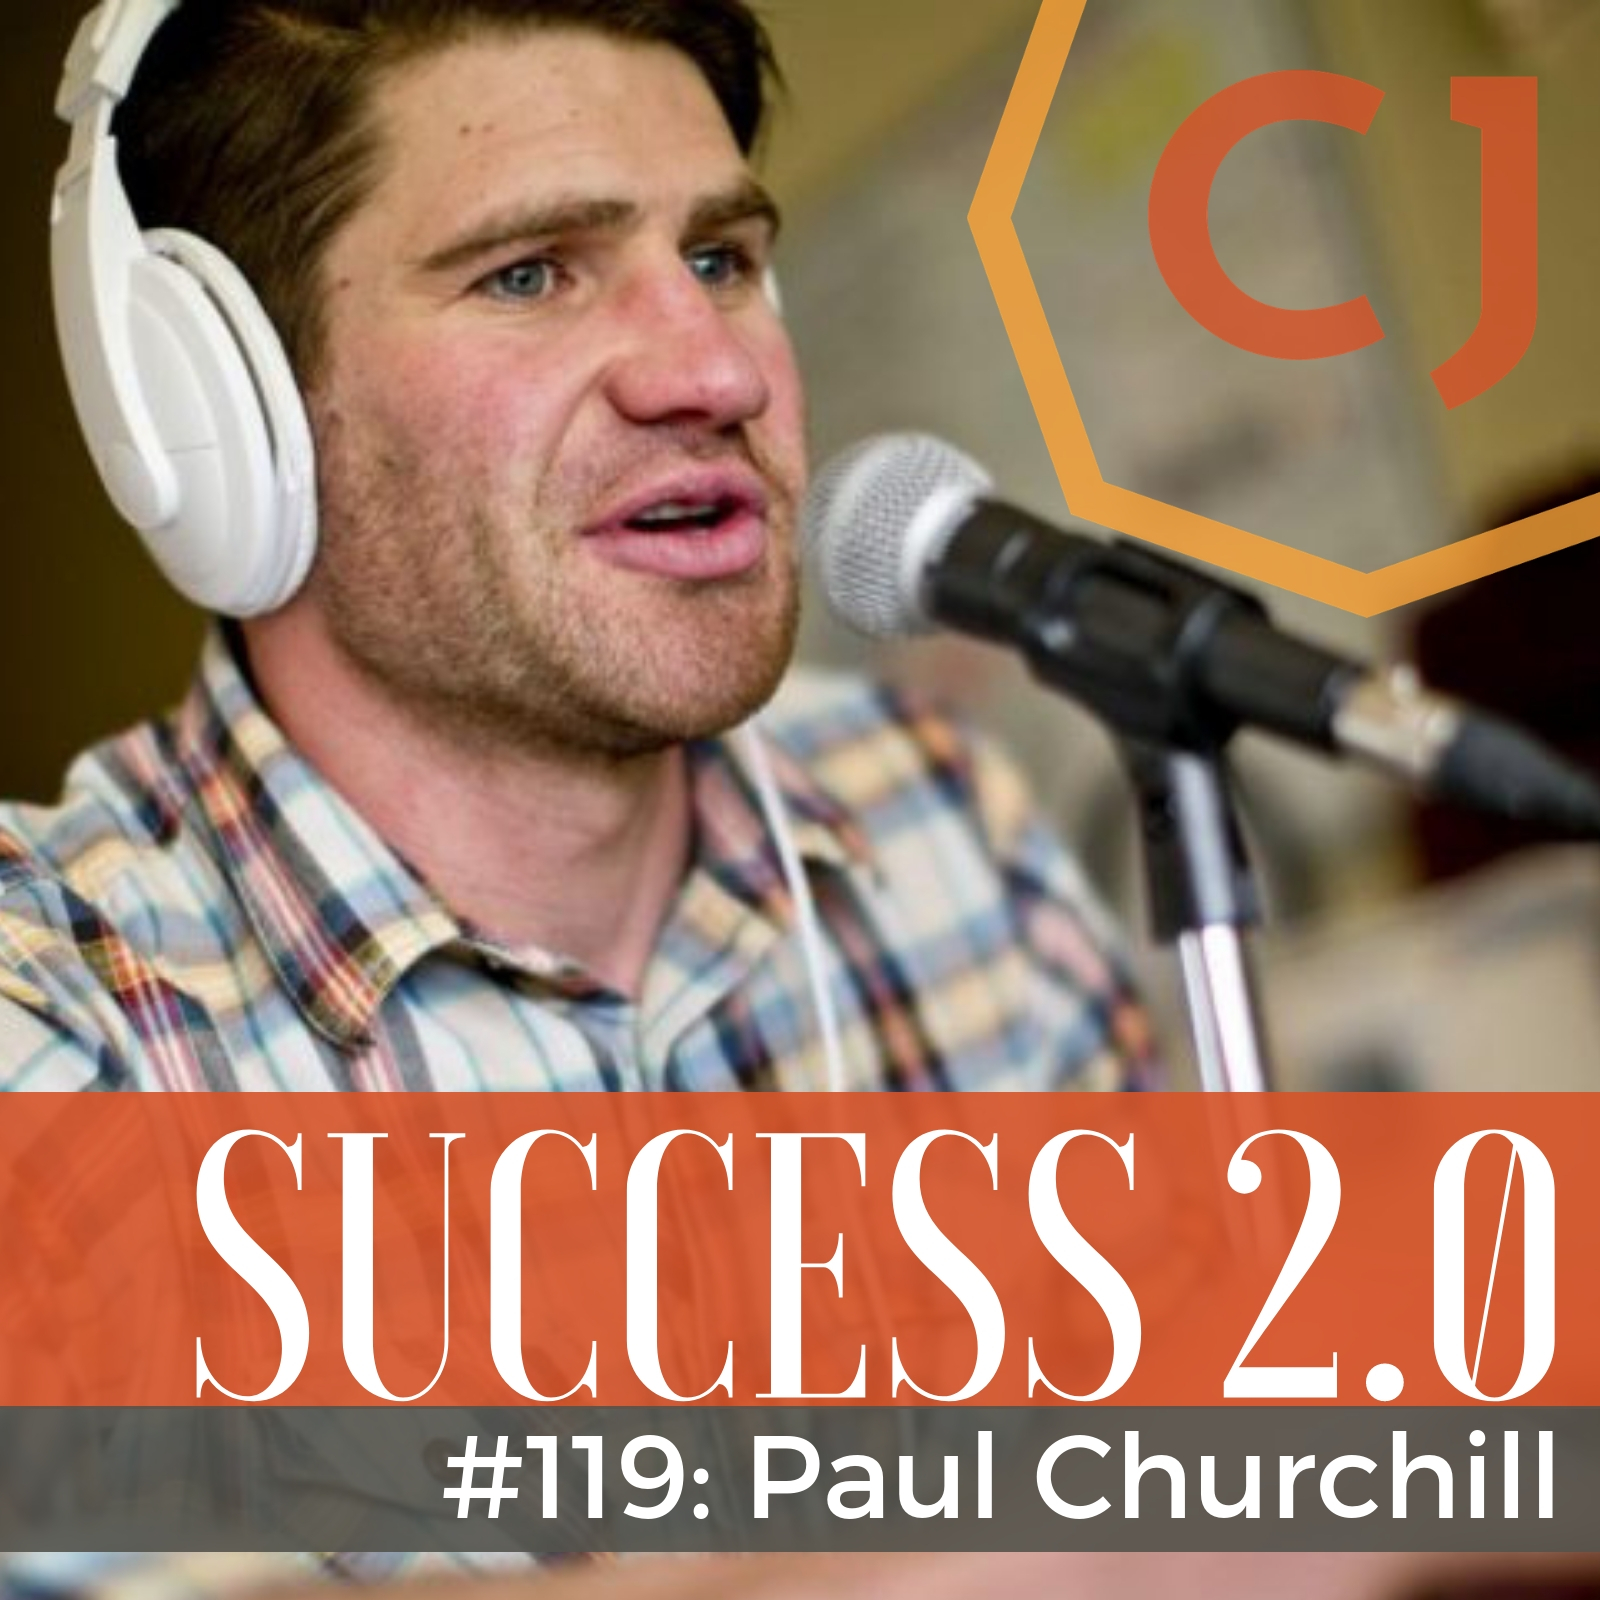 Recovery Elevator Founder Paul Churchill on Success 2.0